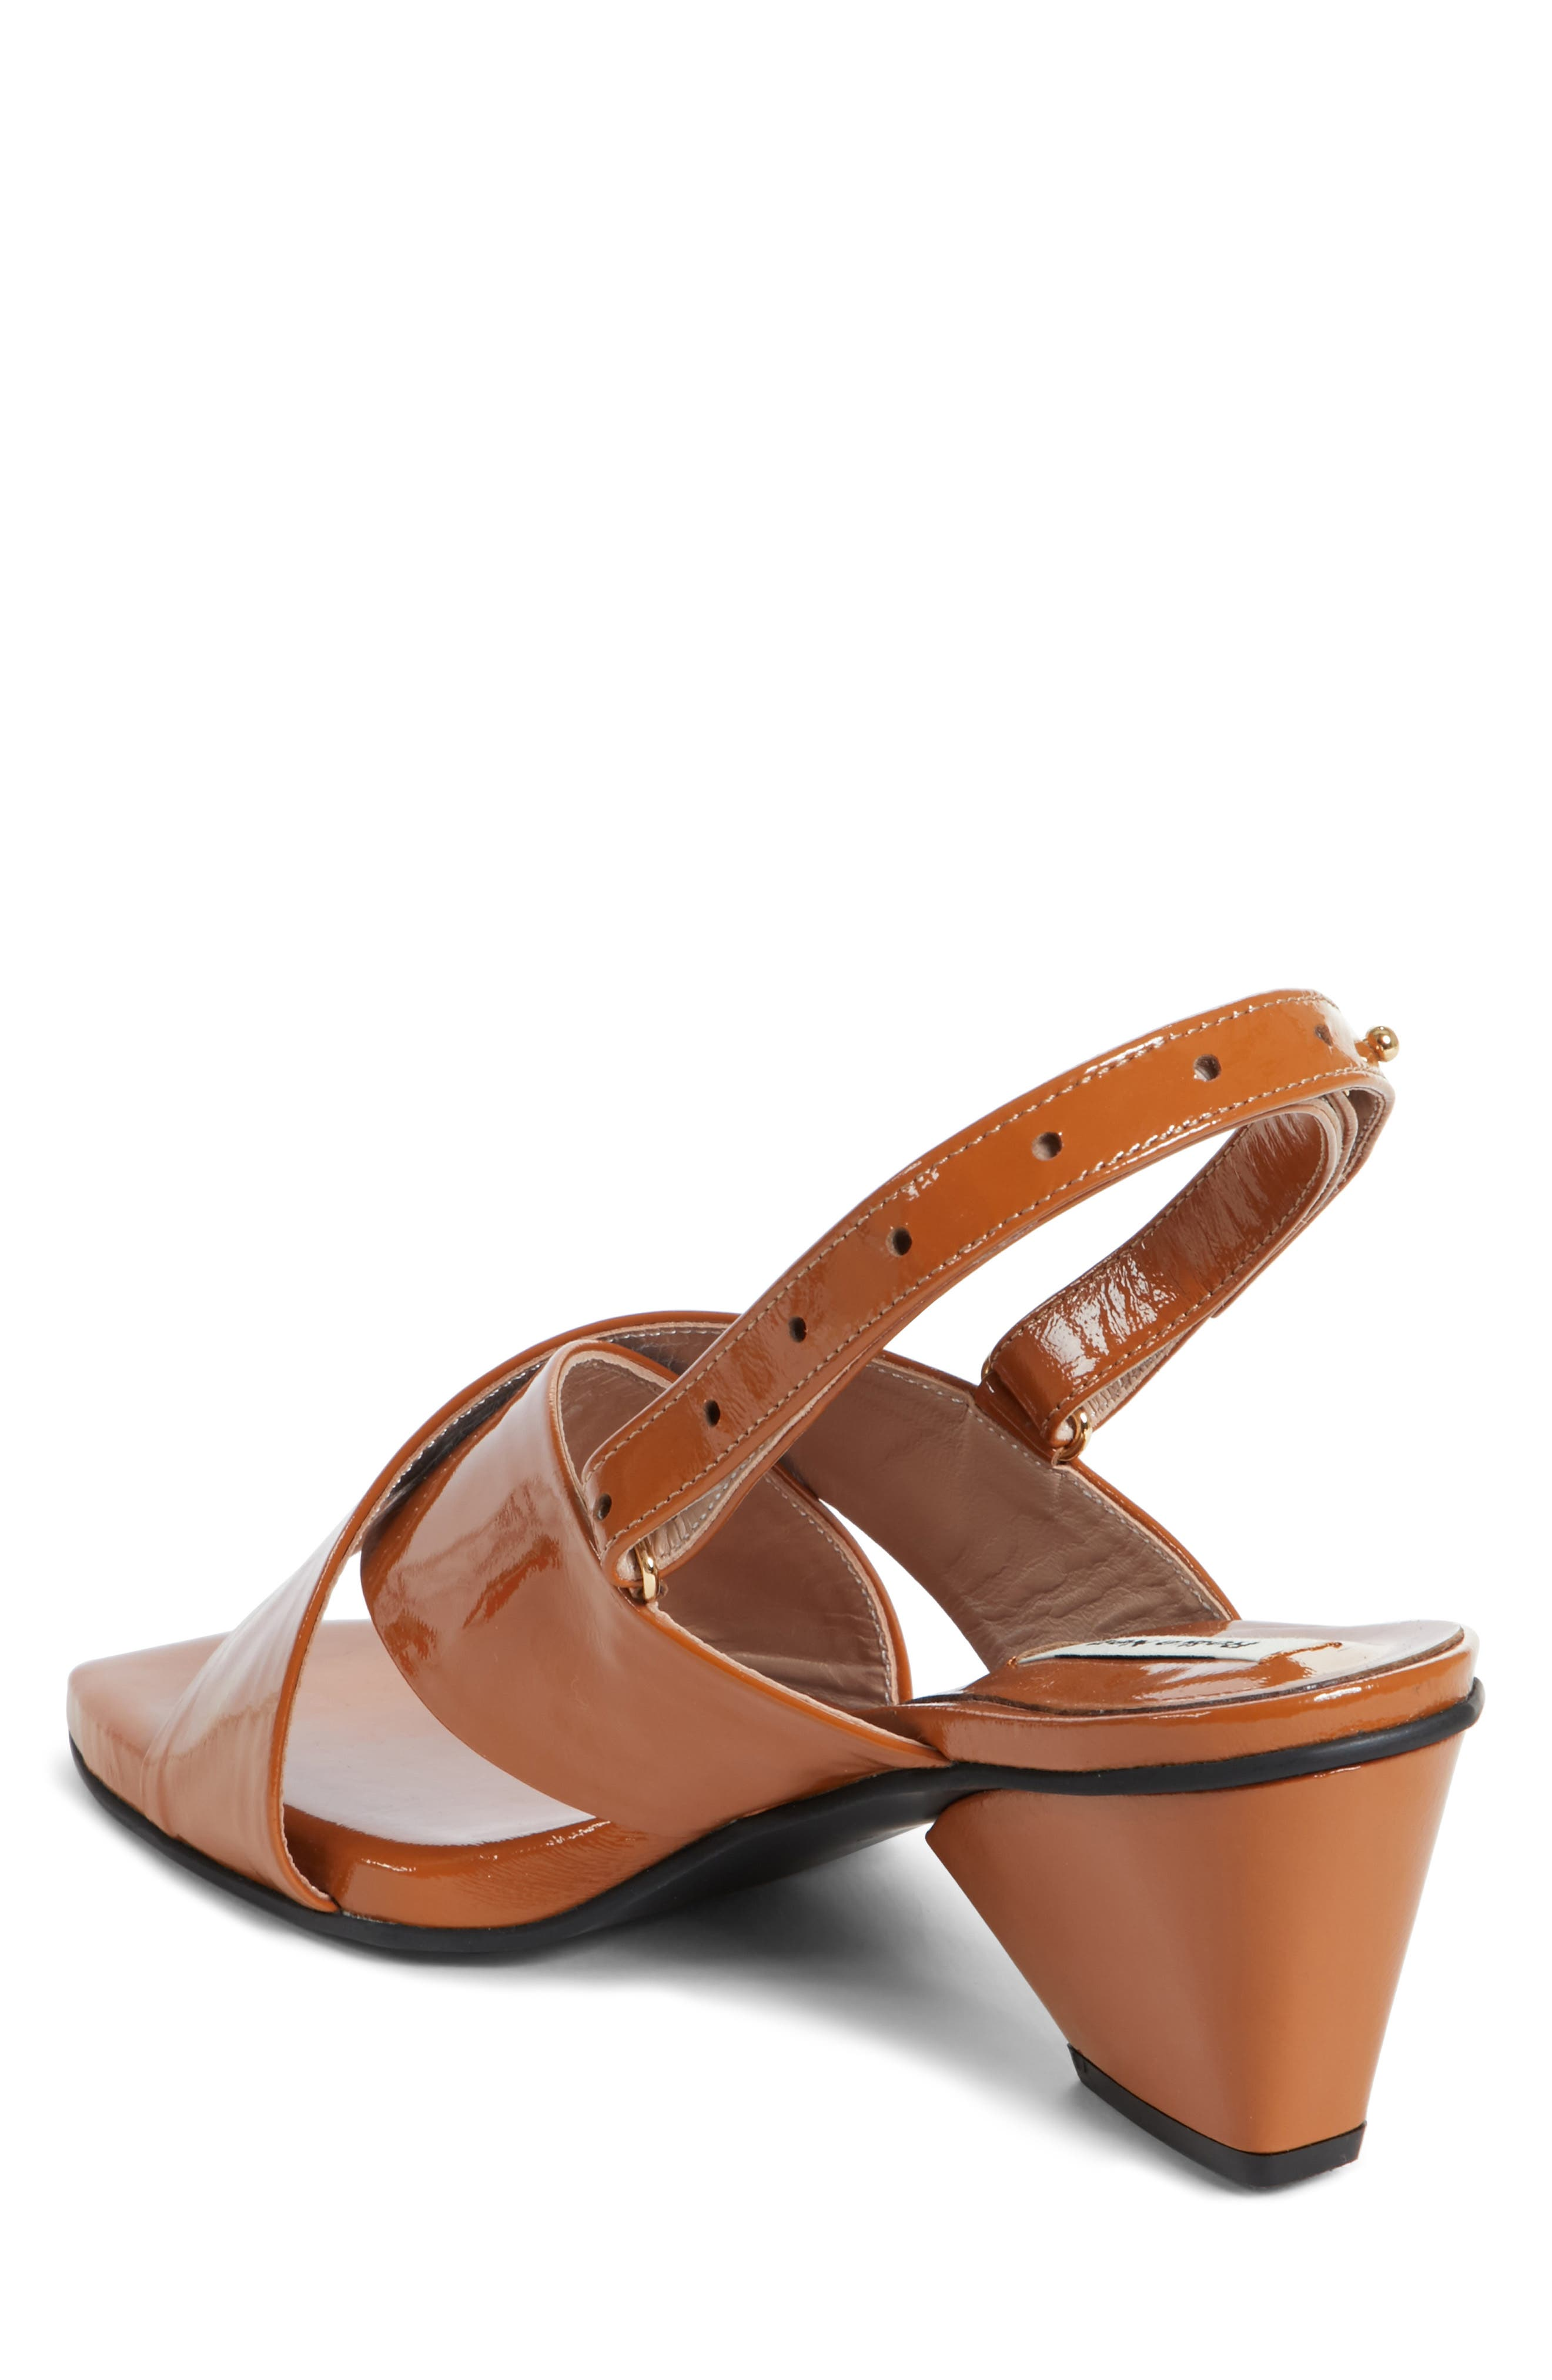 Slingback Sandal,                             Alternate thumbnail 2, color,